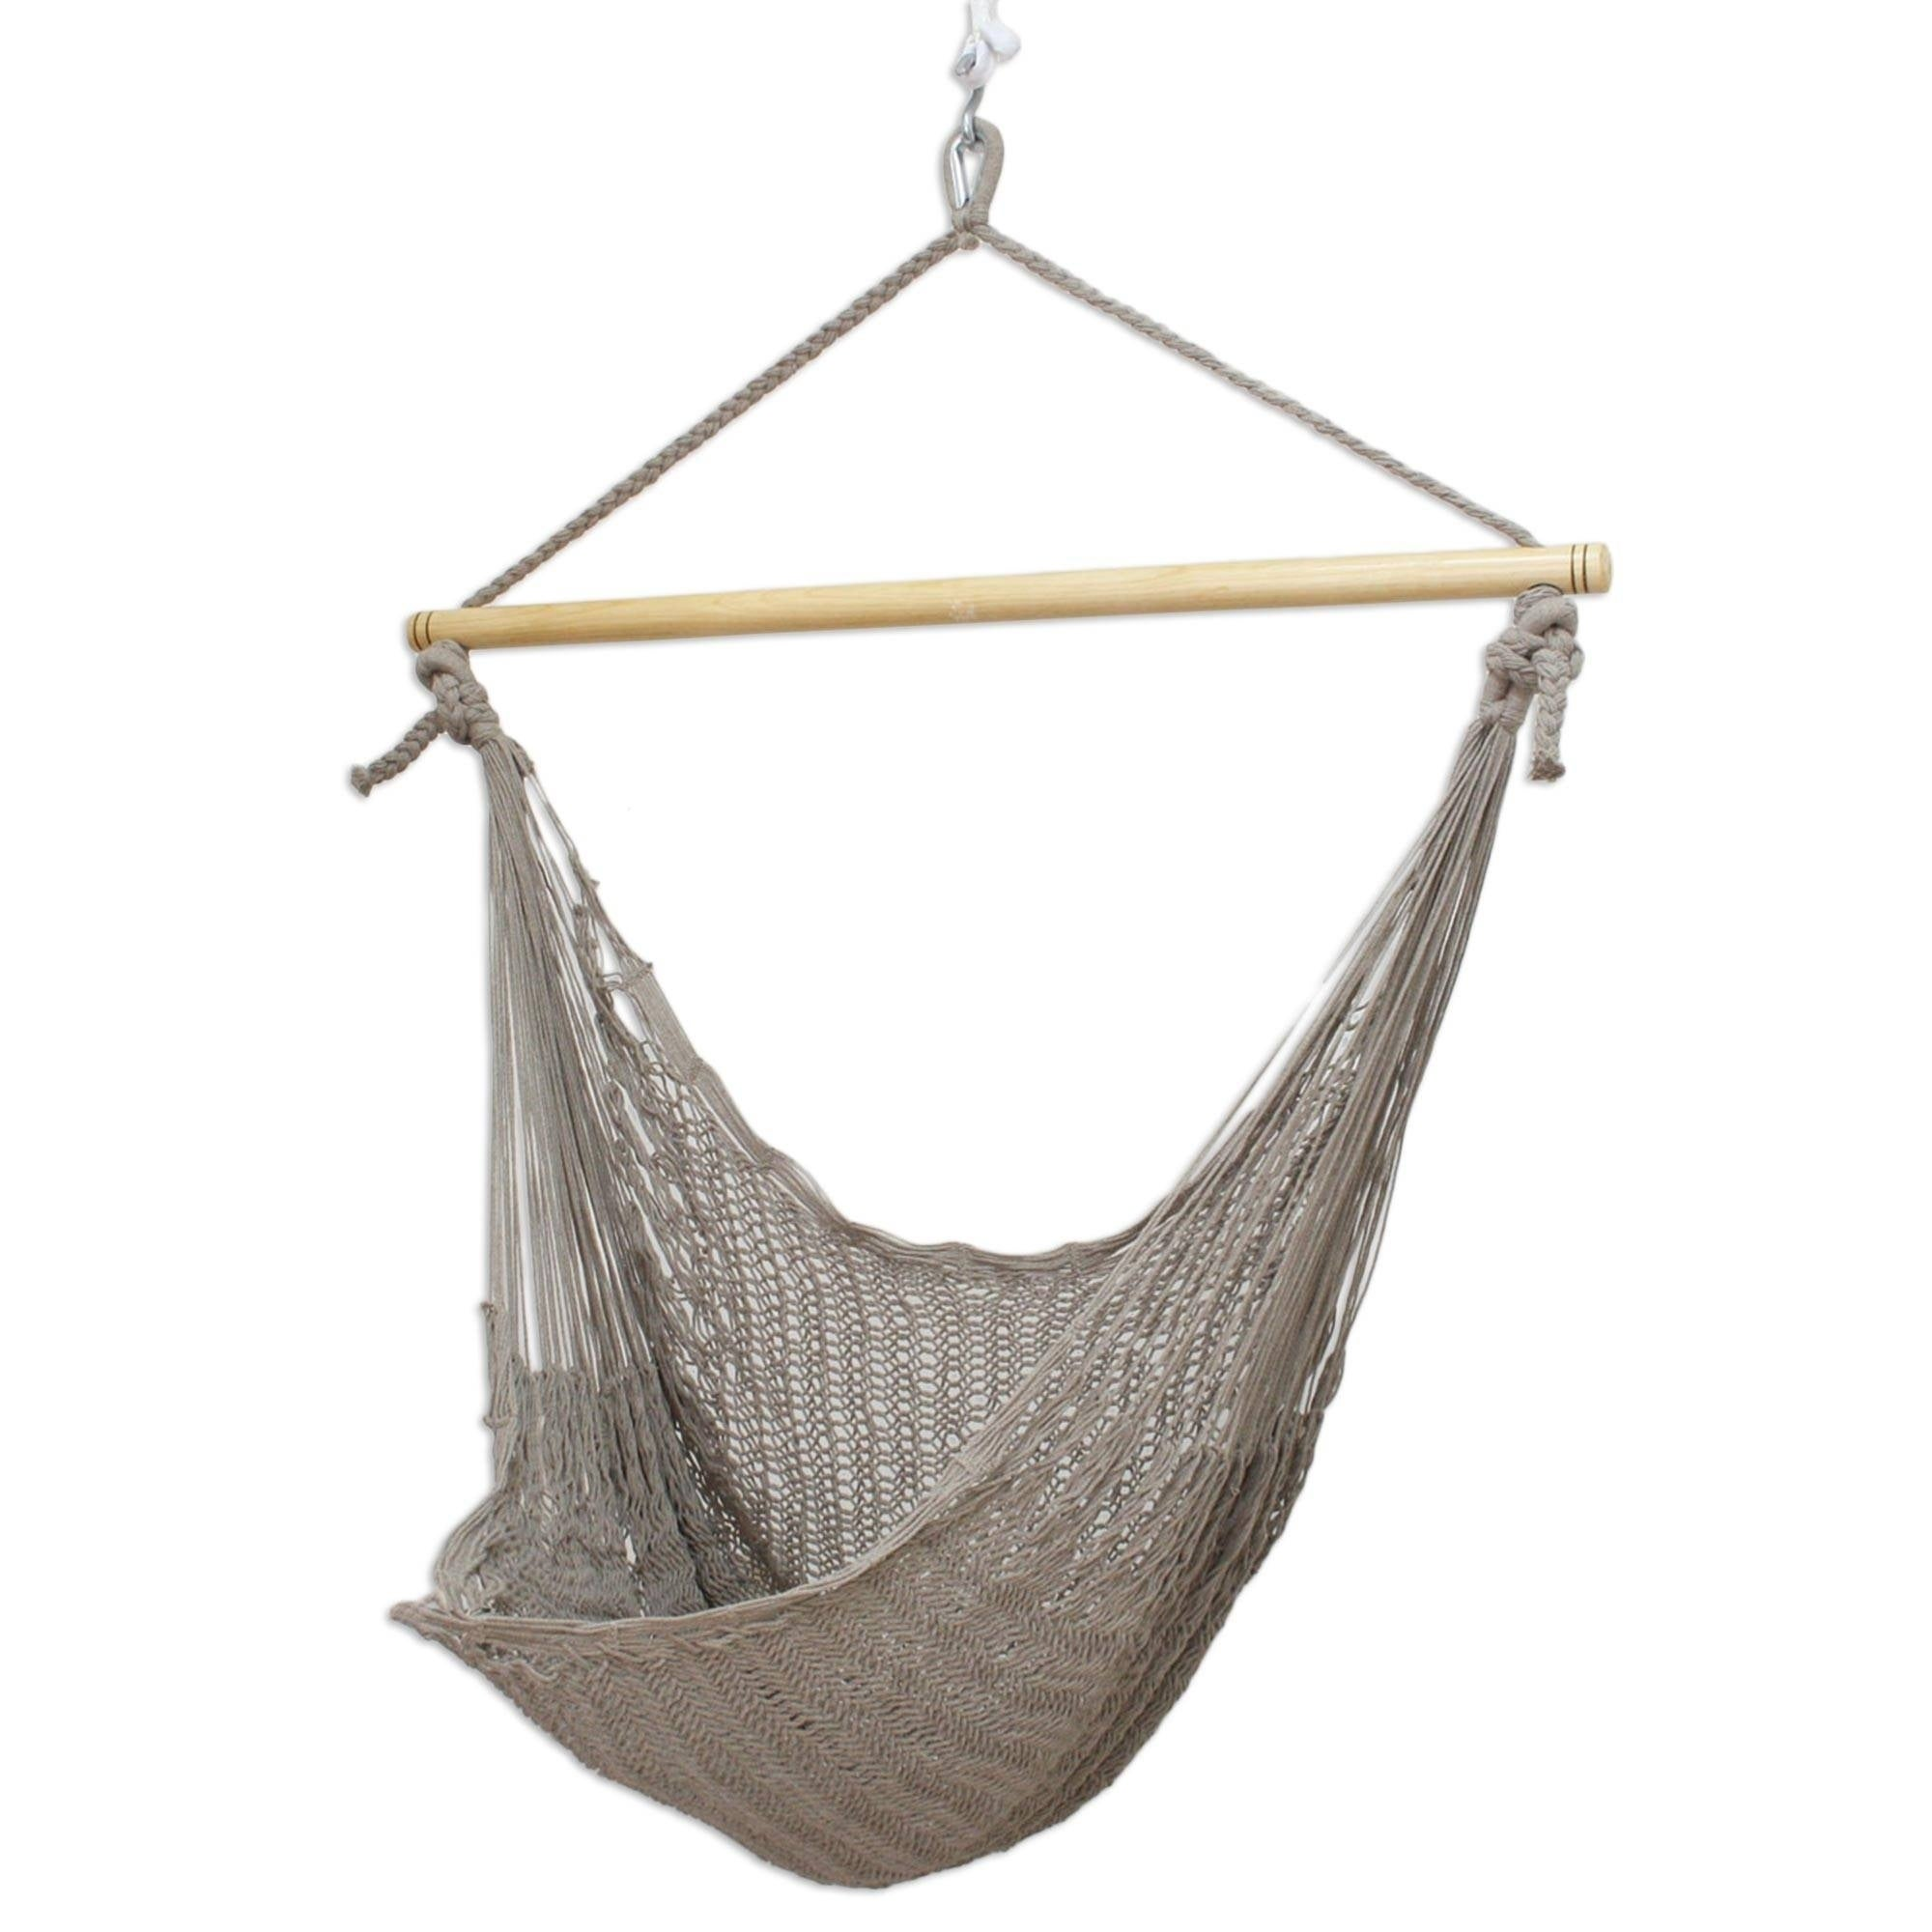 Handmade Grey Cotton Banak Wood Pate Large Deluxe Hammock Swing Chair Mexico